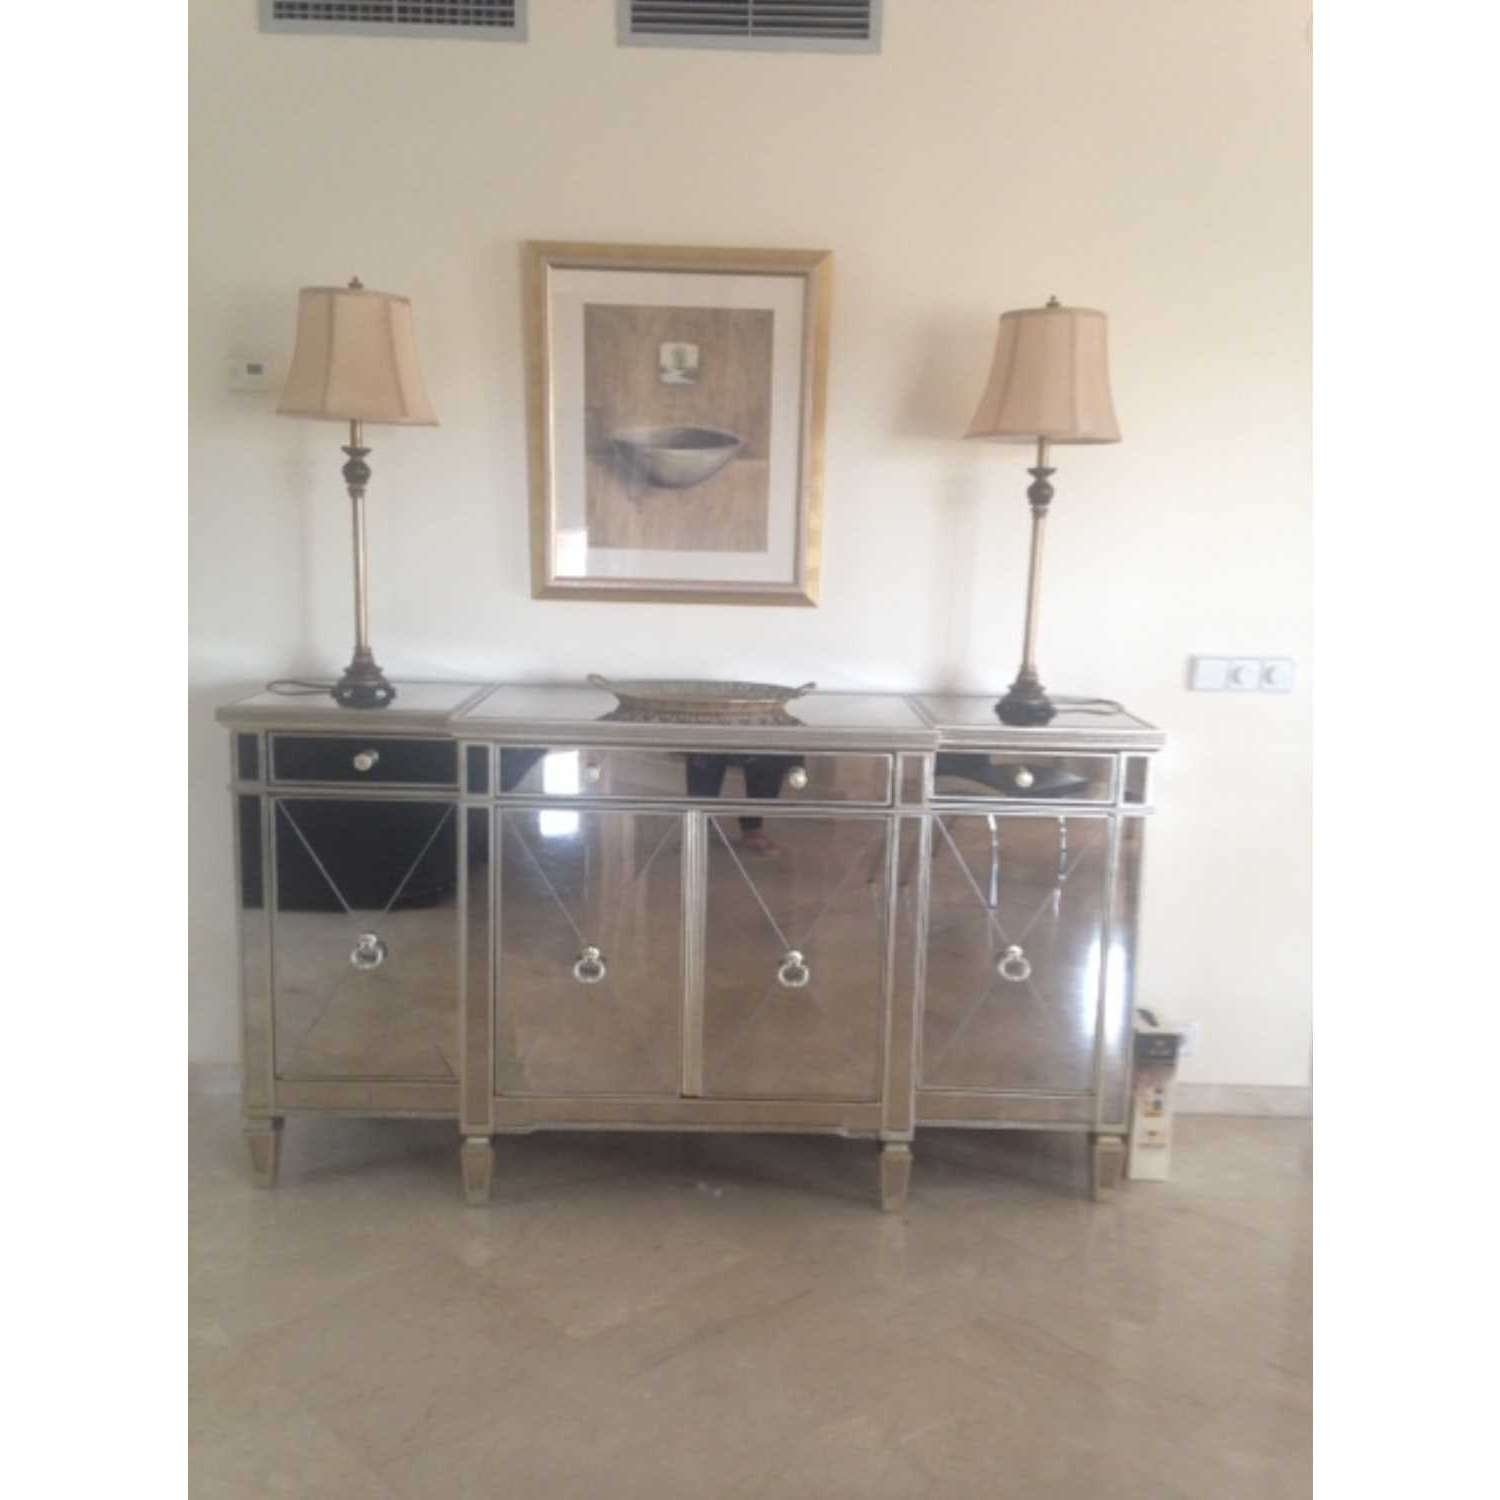 Large Antique Seville Venetian Mirrored Glass Sideboard 4 Door Within Glass Sideboards (View 5 of 20)